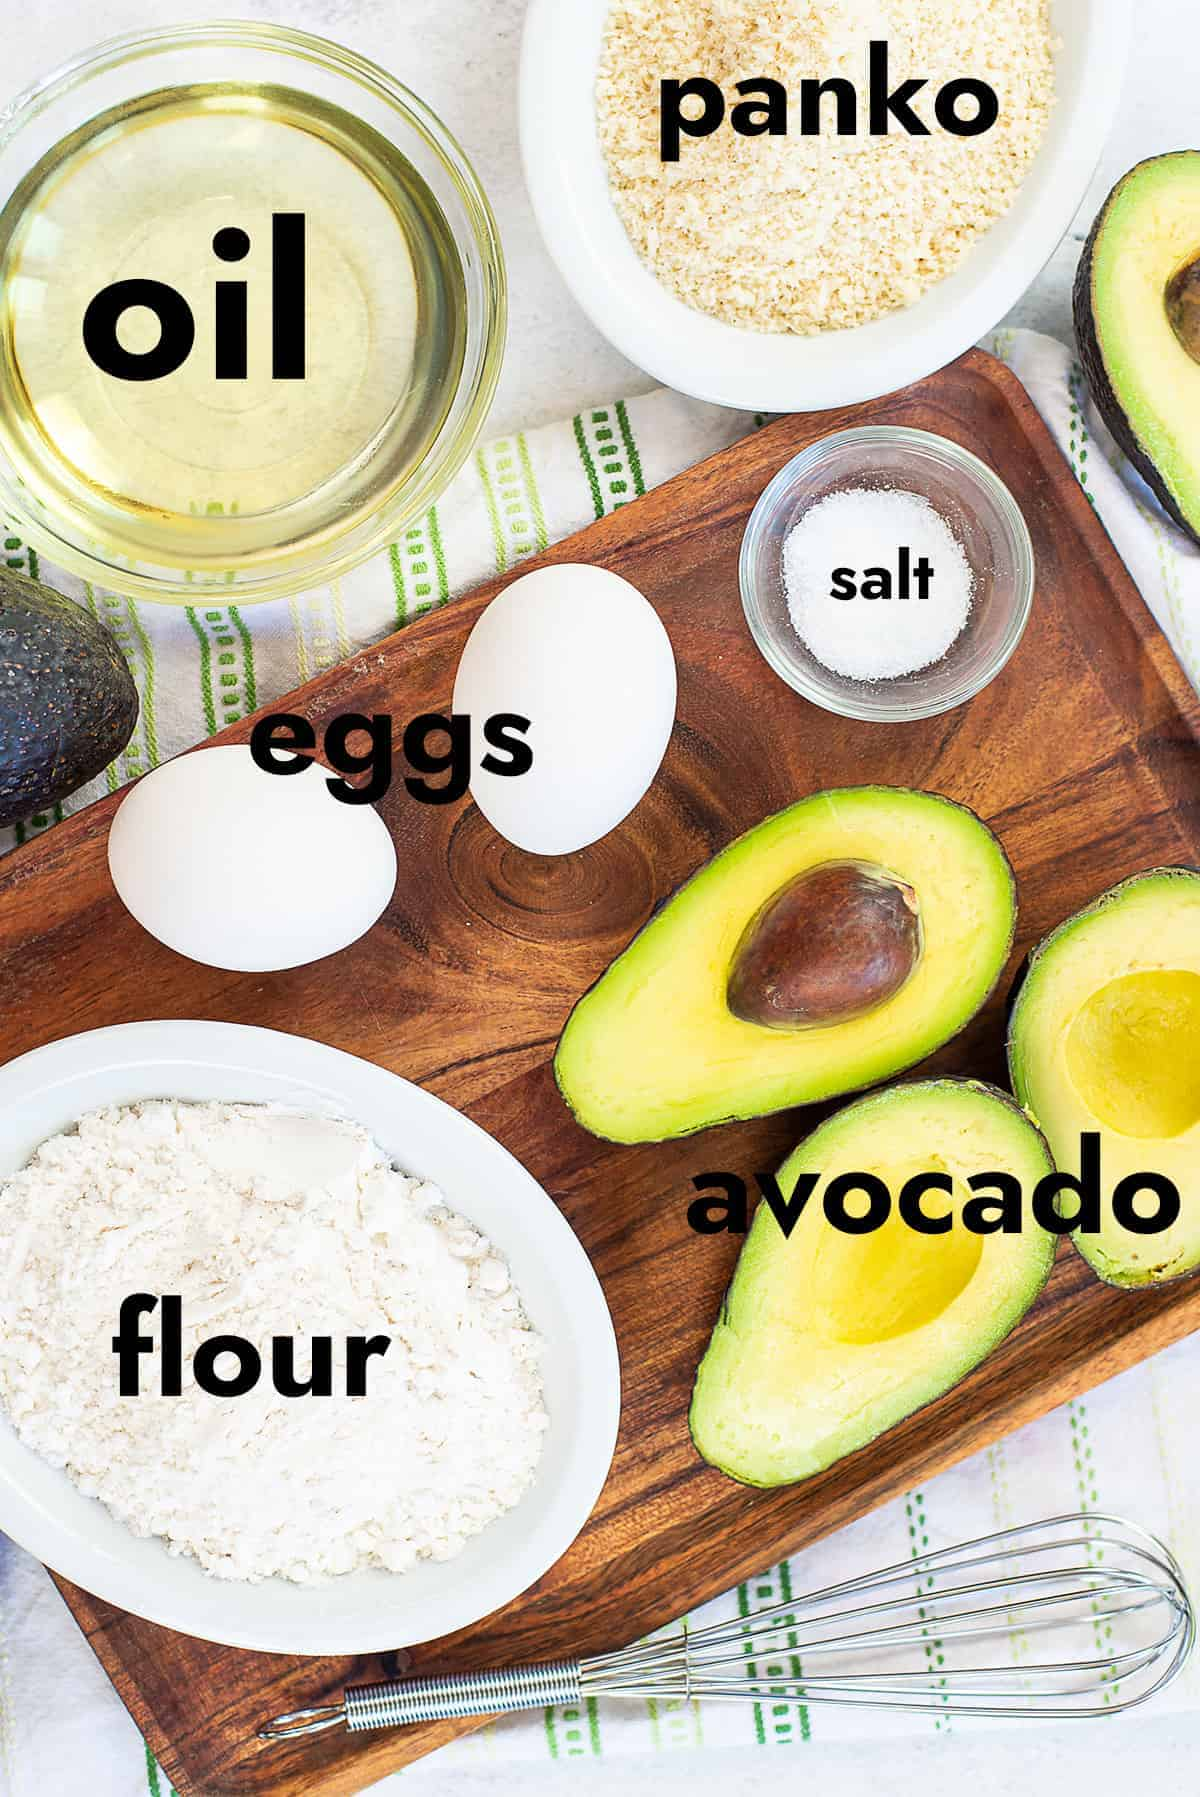 ingredients for avocado fries on wooden board.